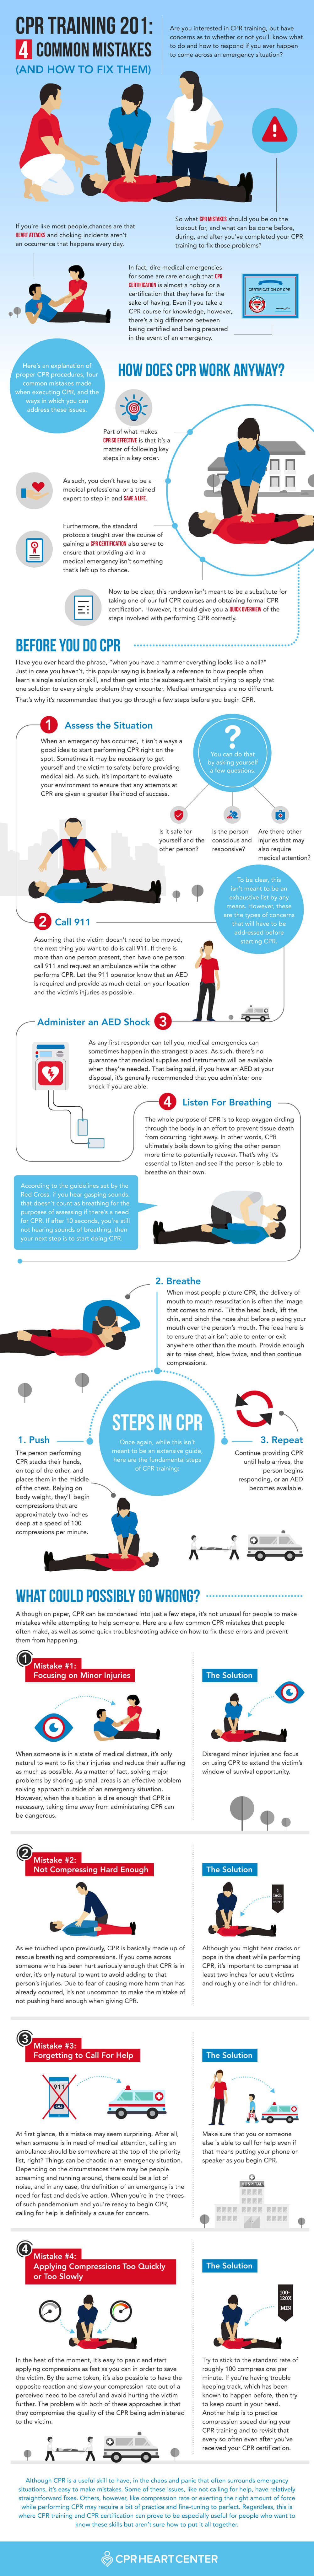 CPR Training 201: 4 Common Mistakes